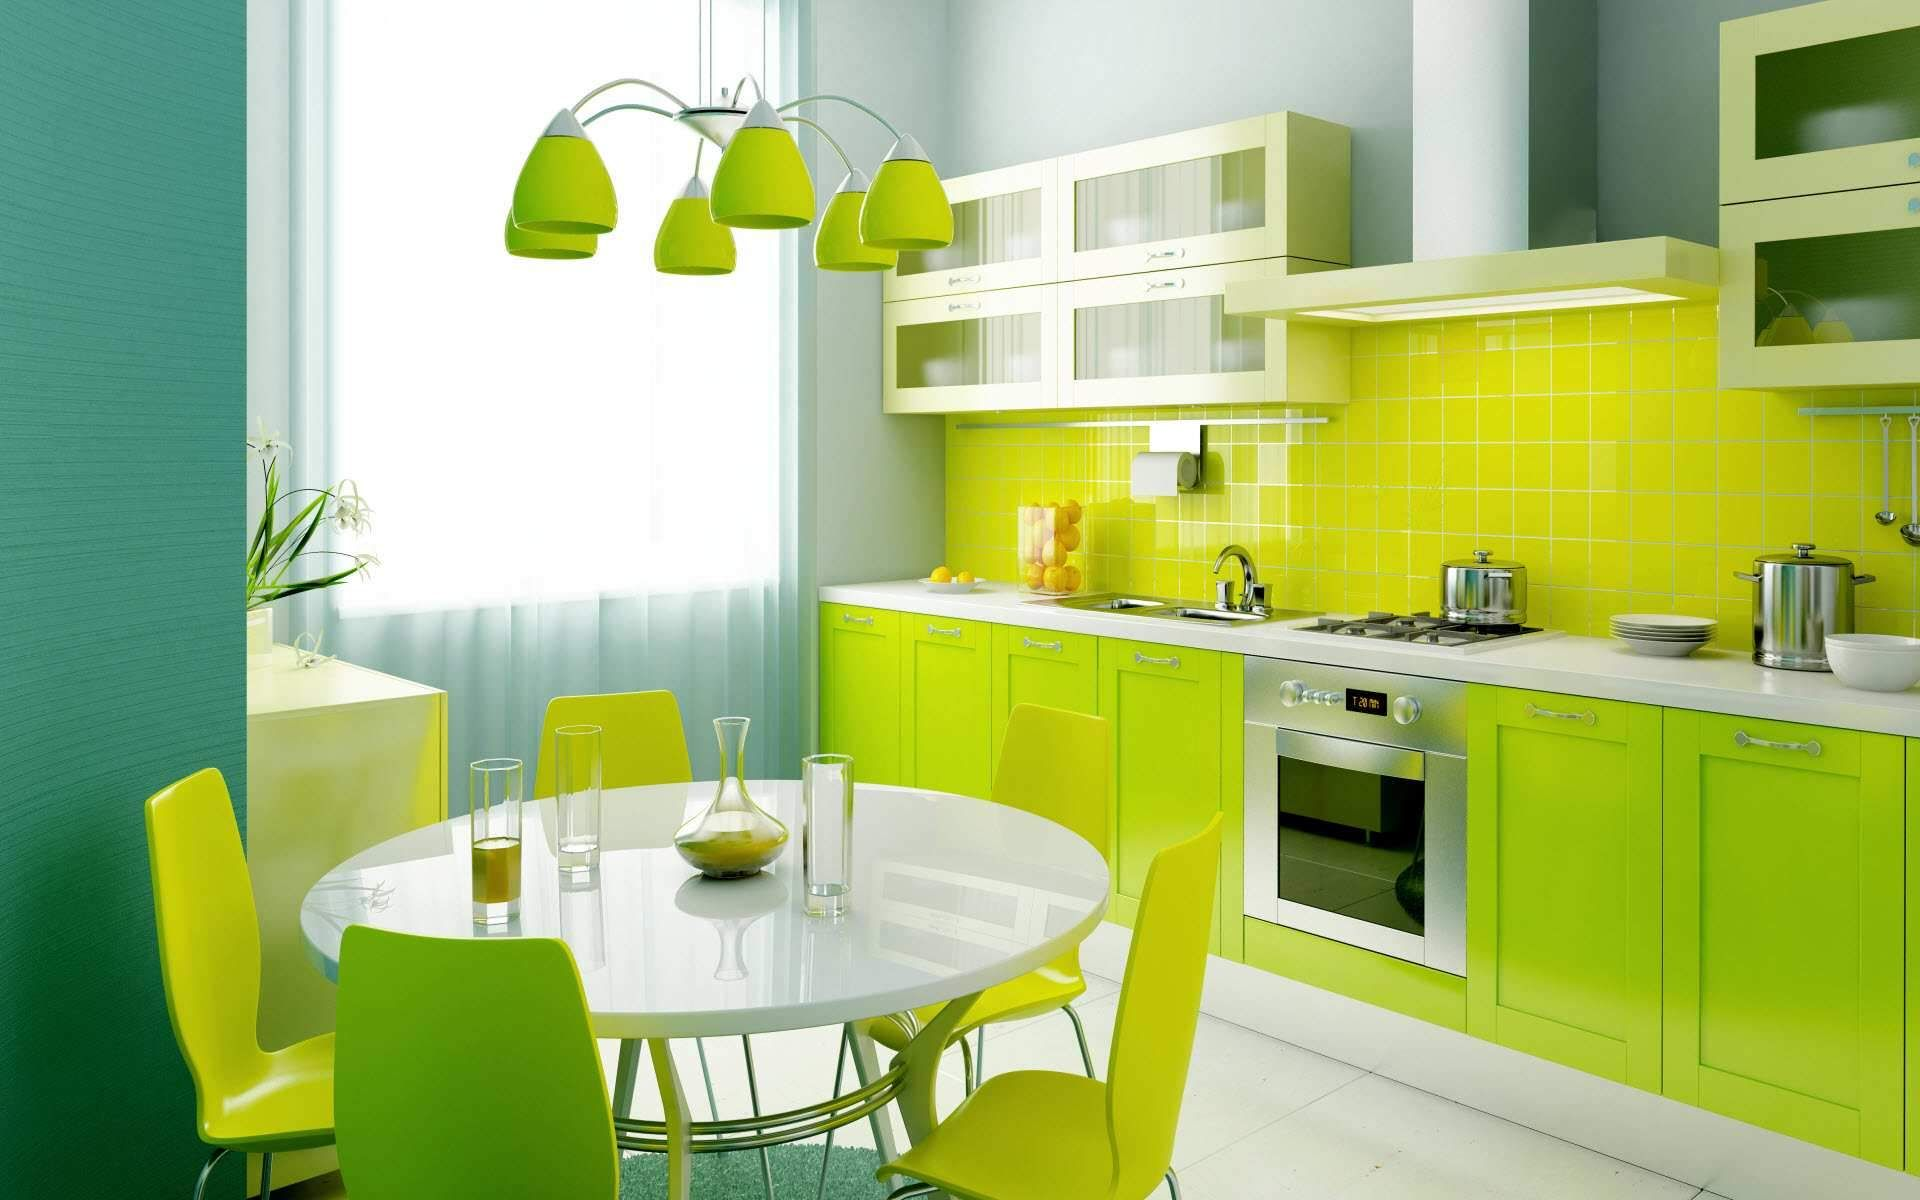 green interior design 1000 images about kitchen ideas kitchen designs - Interior Design Kitchen